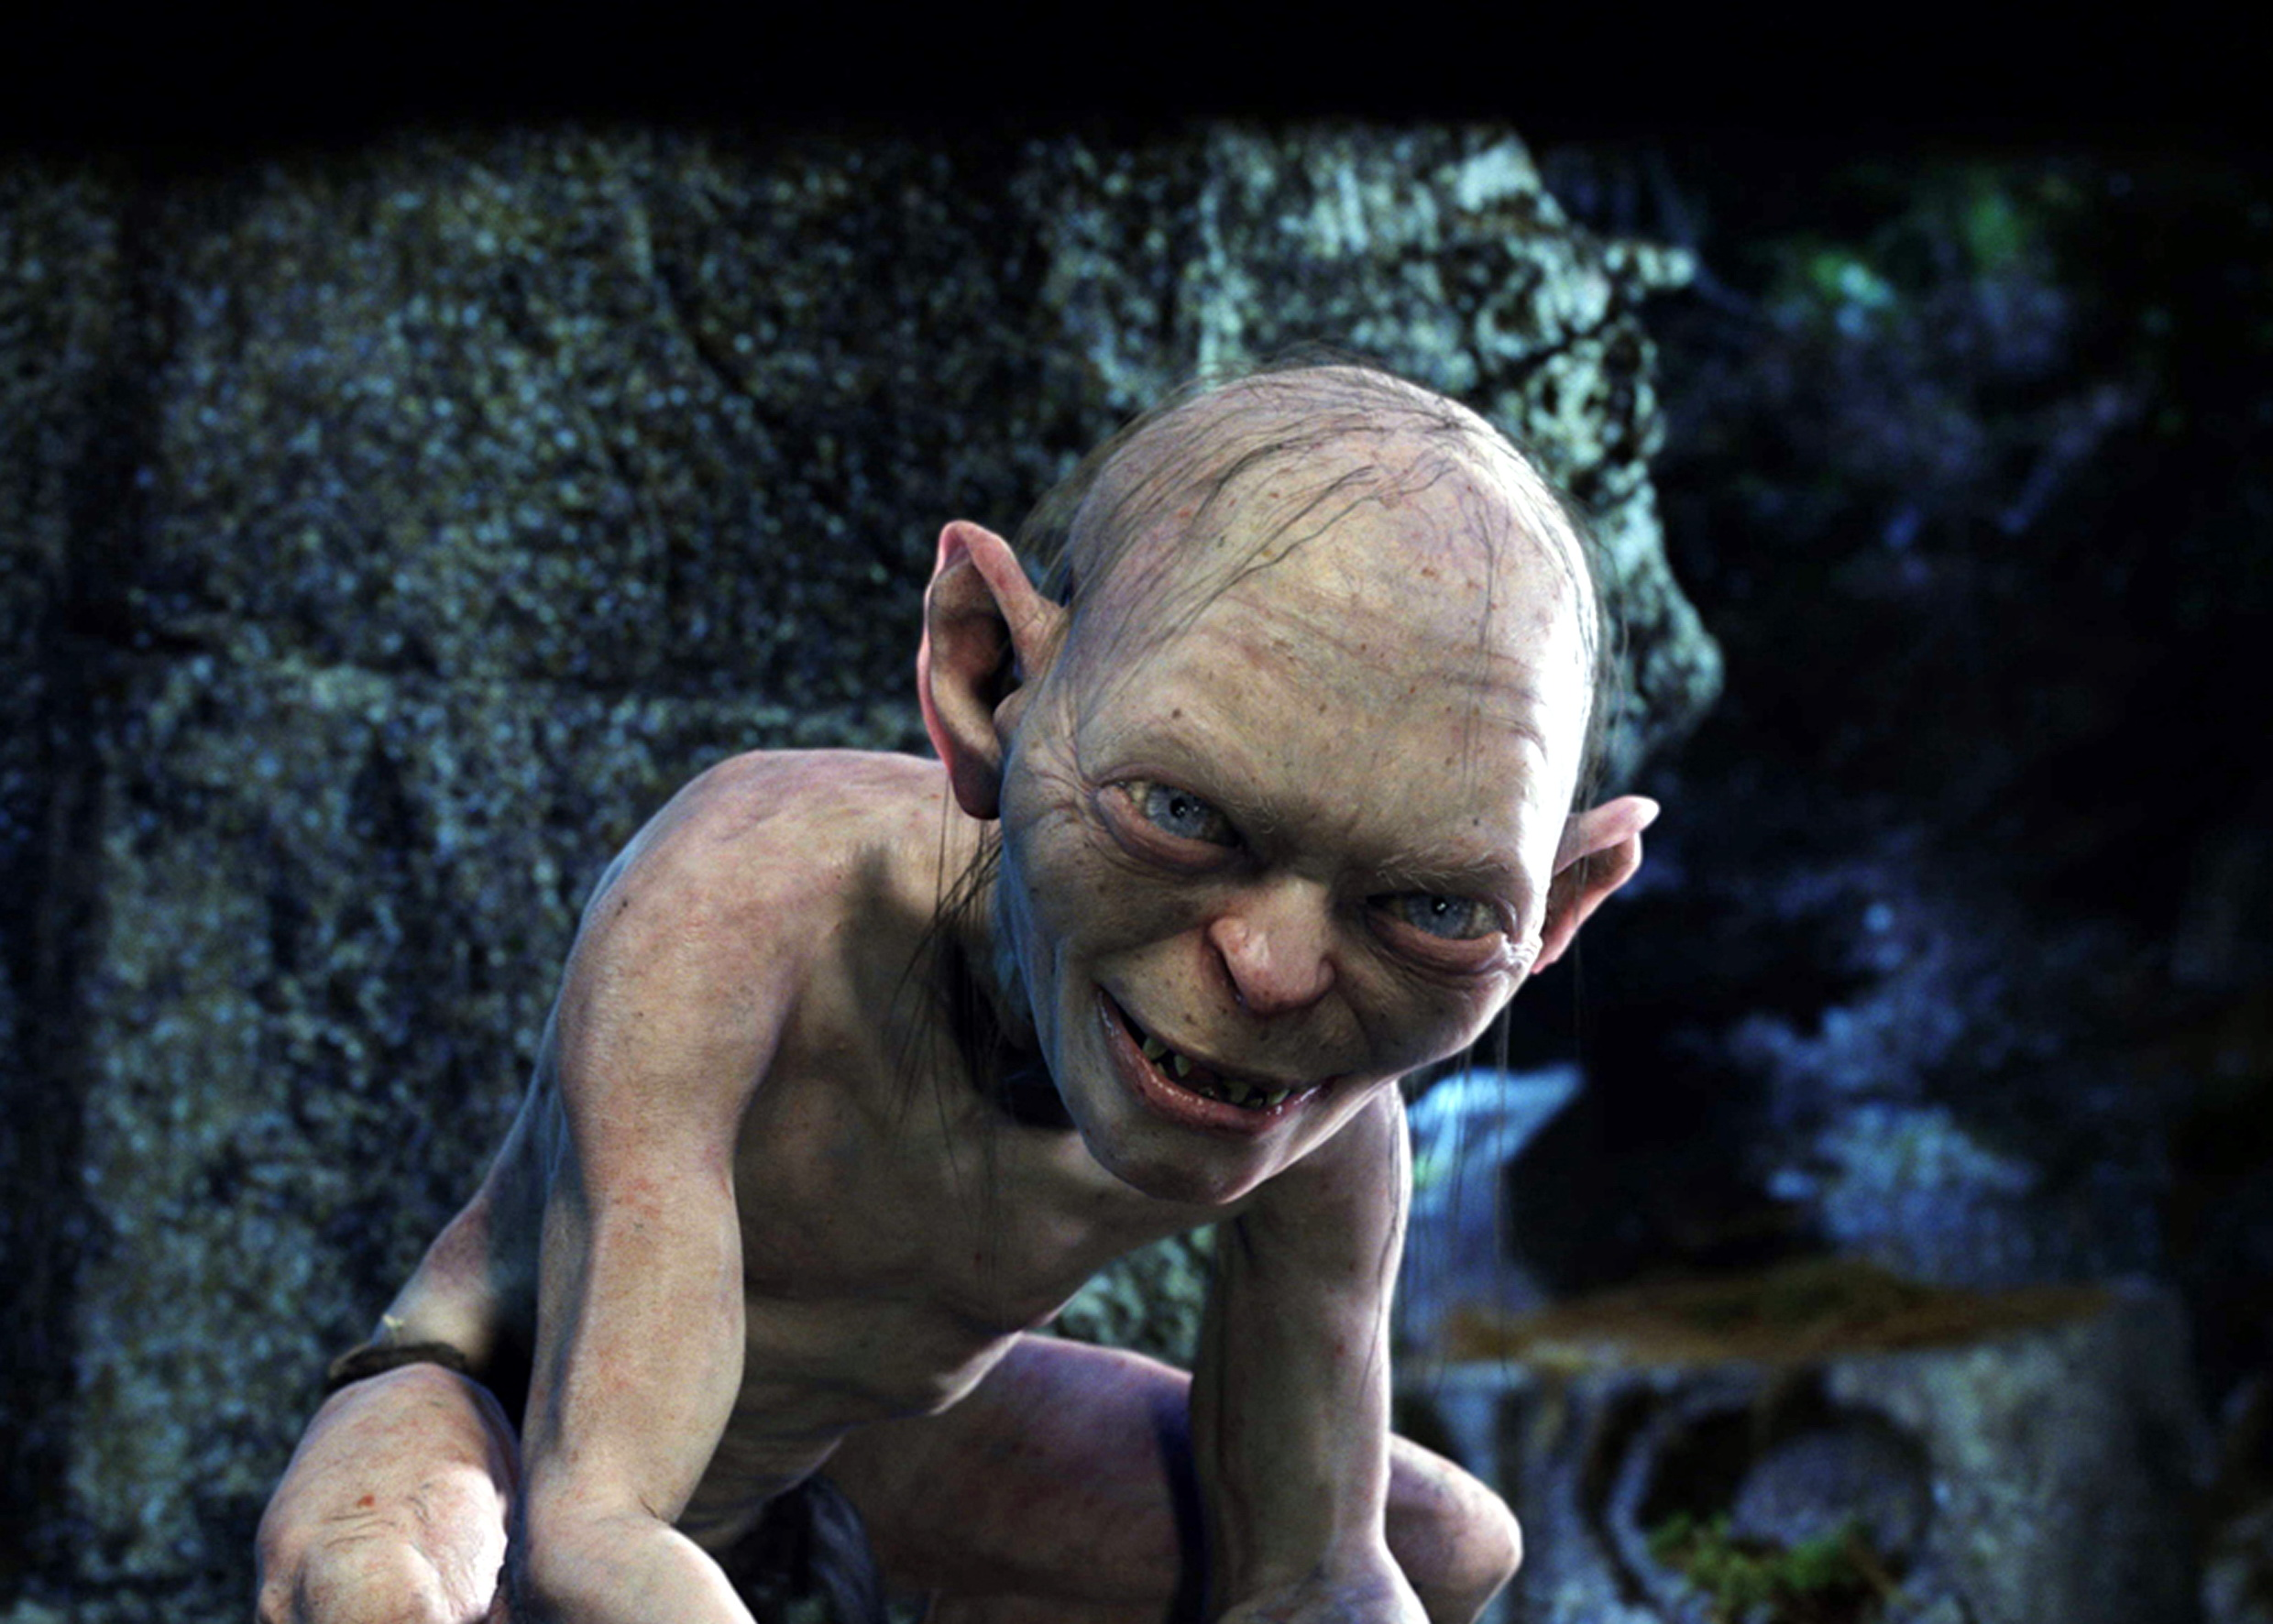 An image of Gollum from The Lord of the Rings: The Return of the King